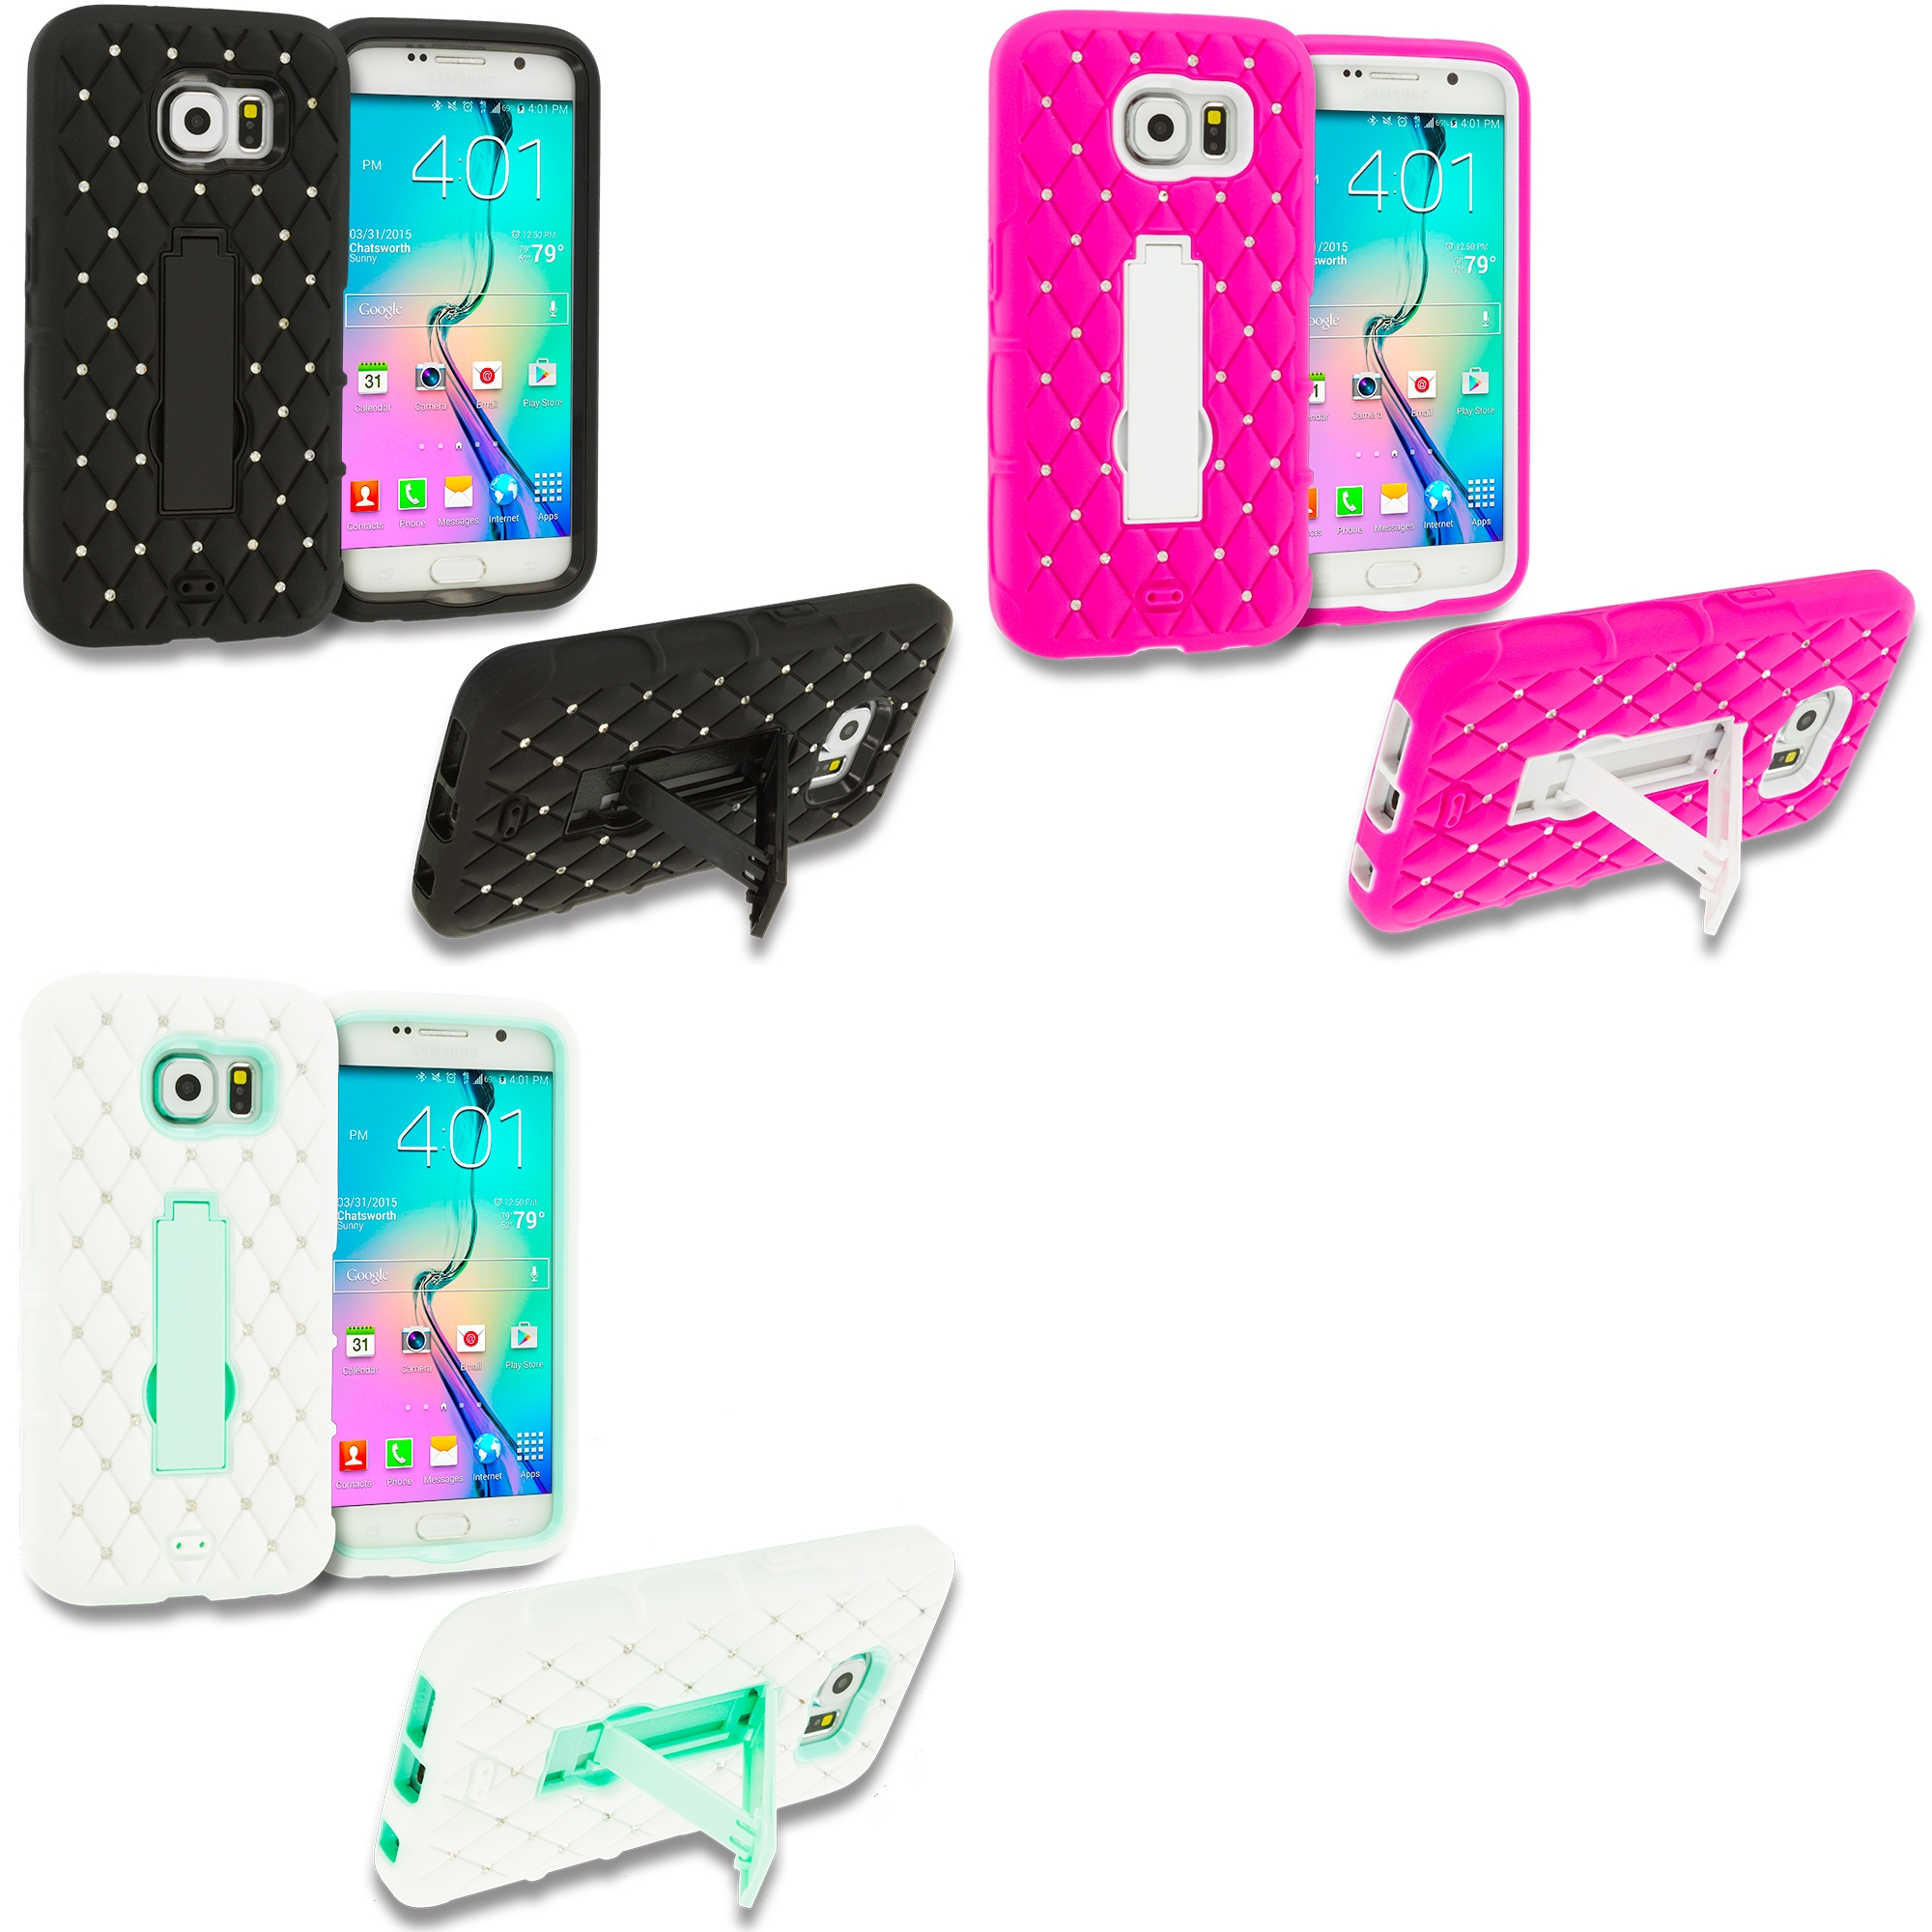 Samsung Galaxy S6 3 in 1 Combo Bundle Pack - Hybrid Diamond Bling Hard Soft Case Cover with Kickstand